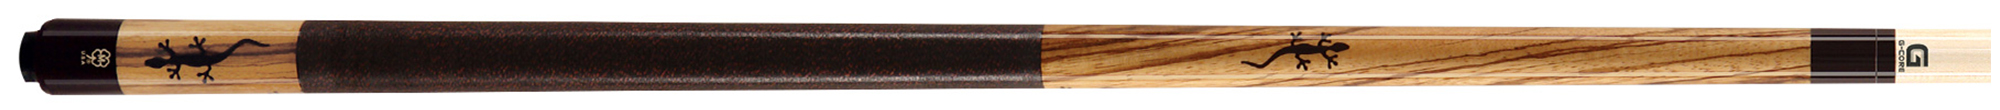 PK3100: McDermott M54A Zebrawood/inlay pool #1